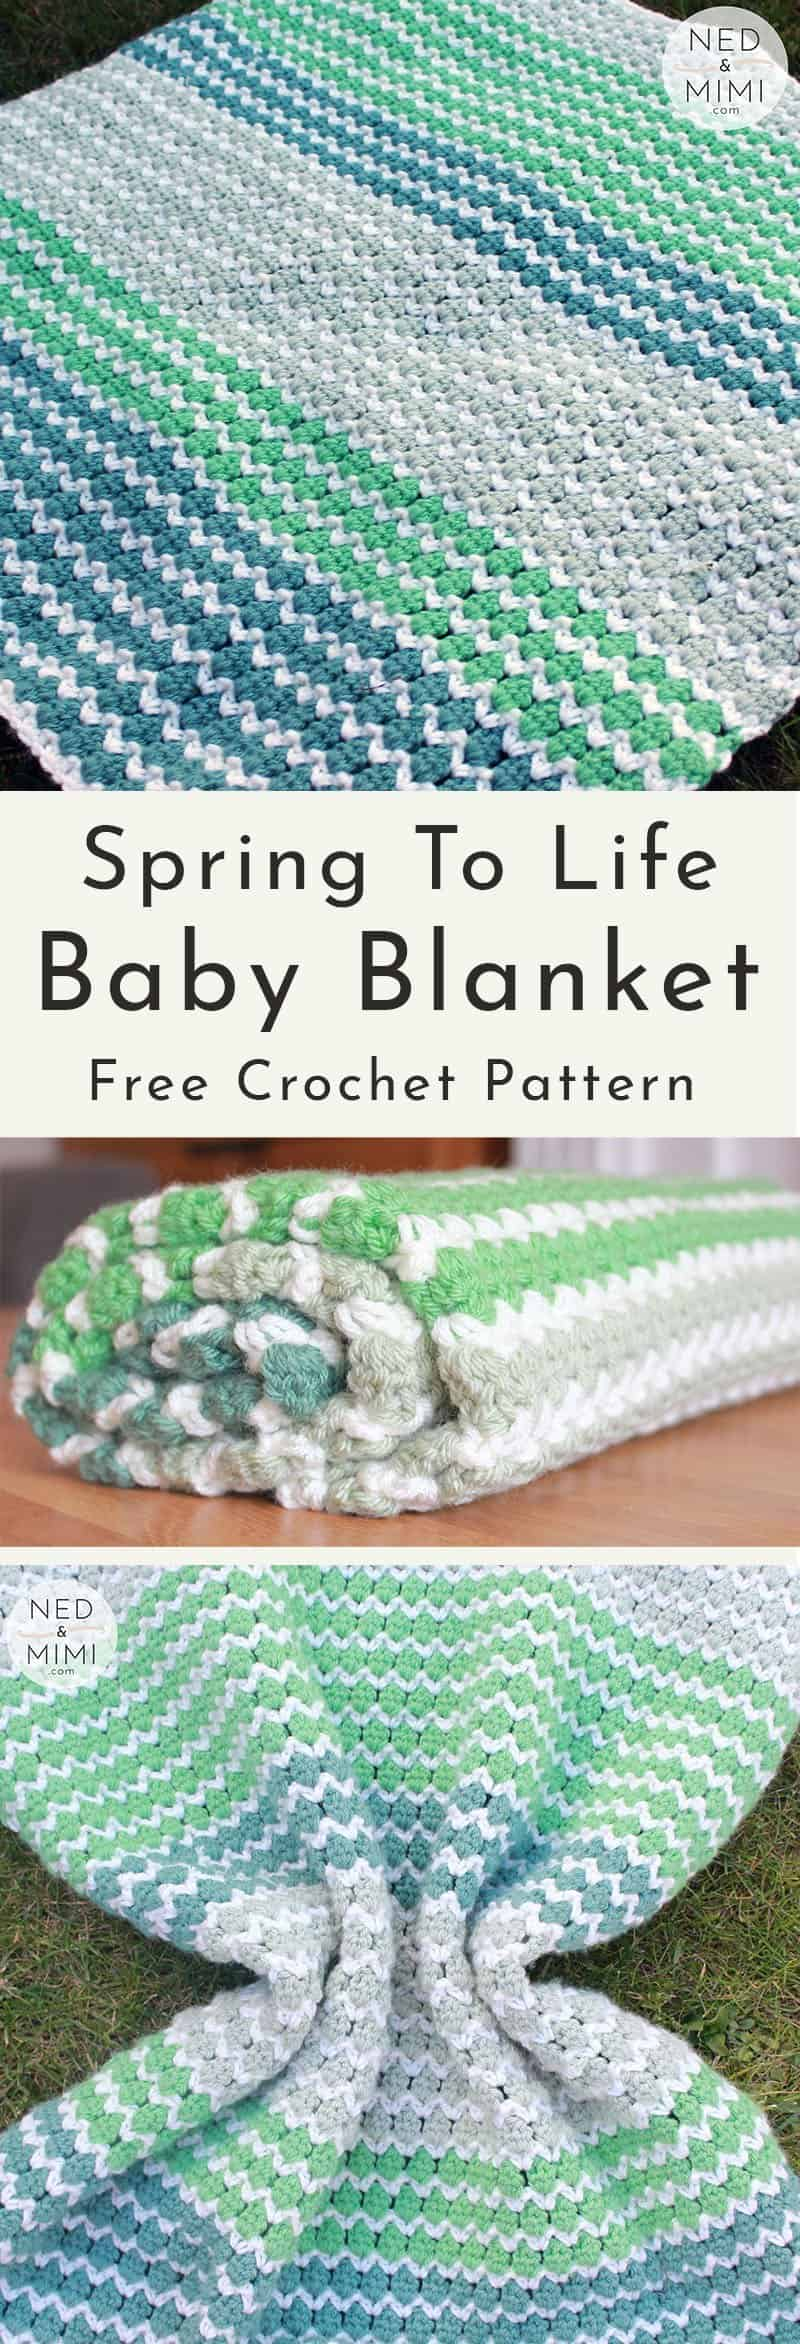 spring to life baby blanket pinterest